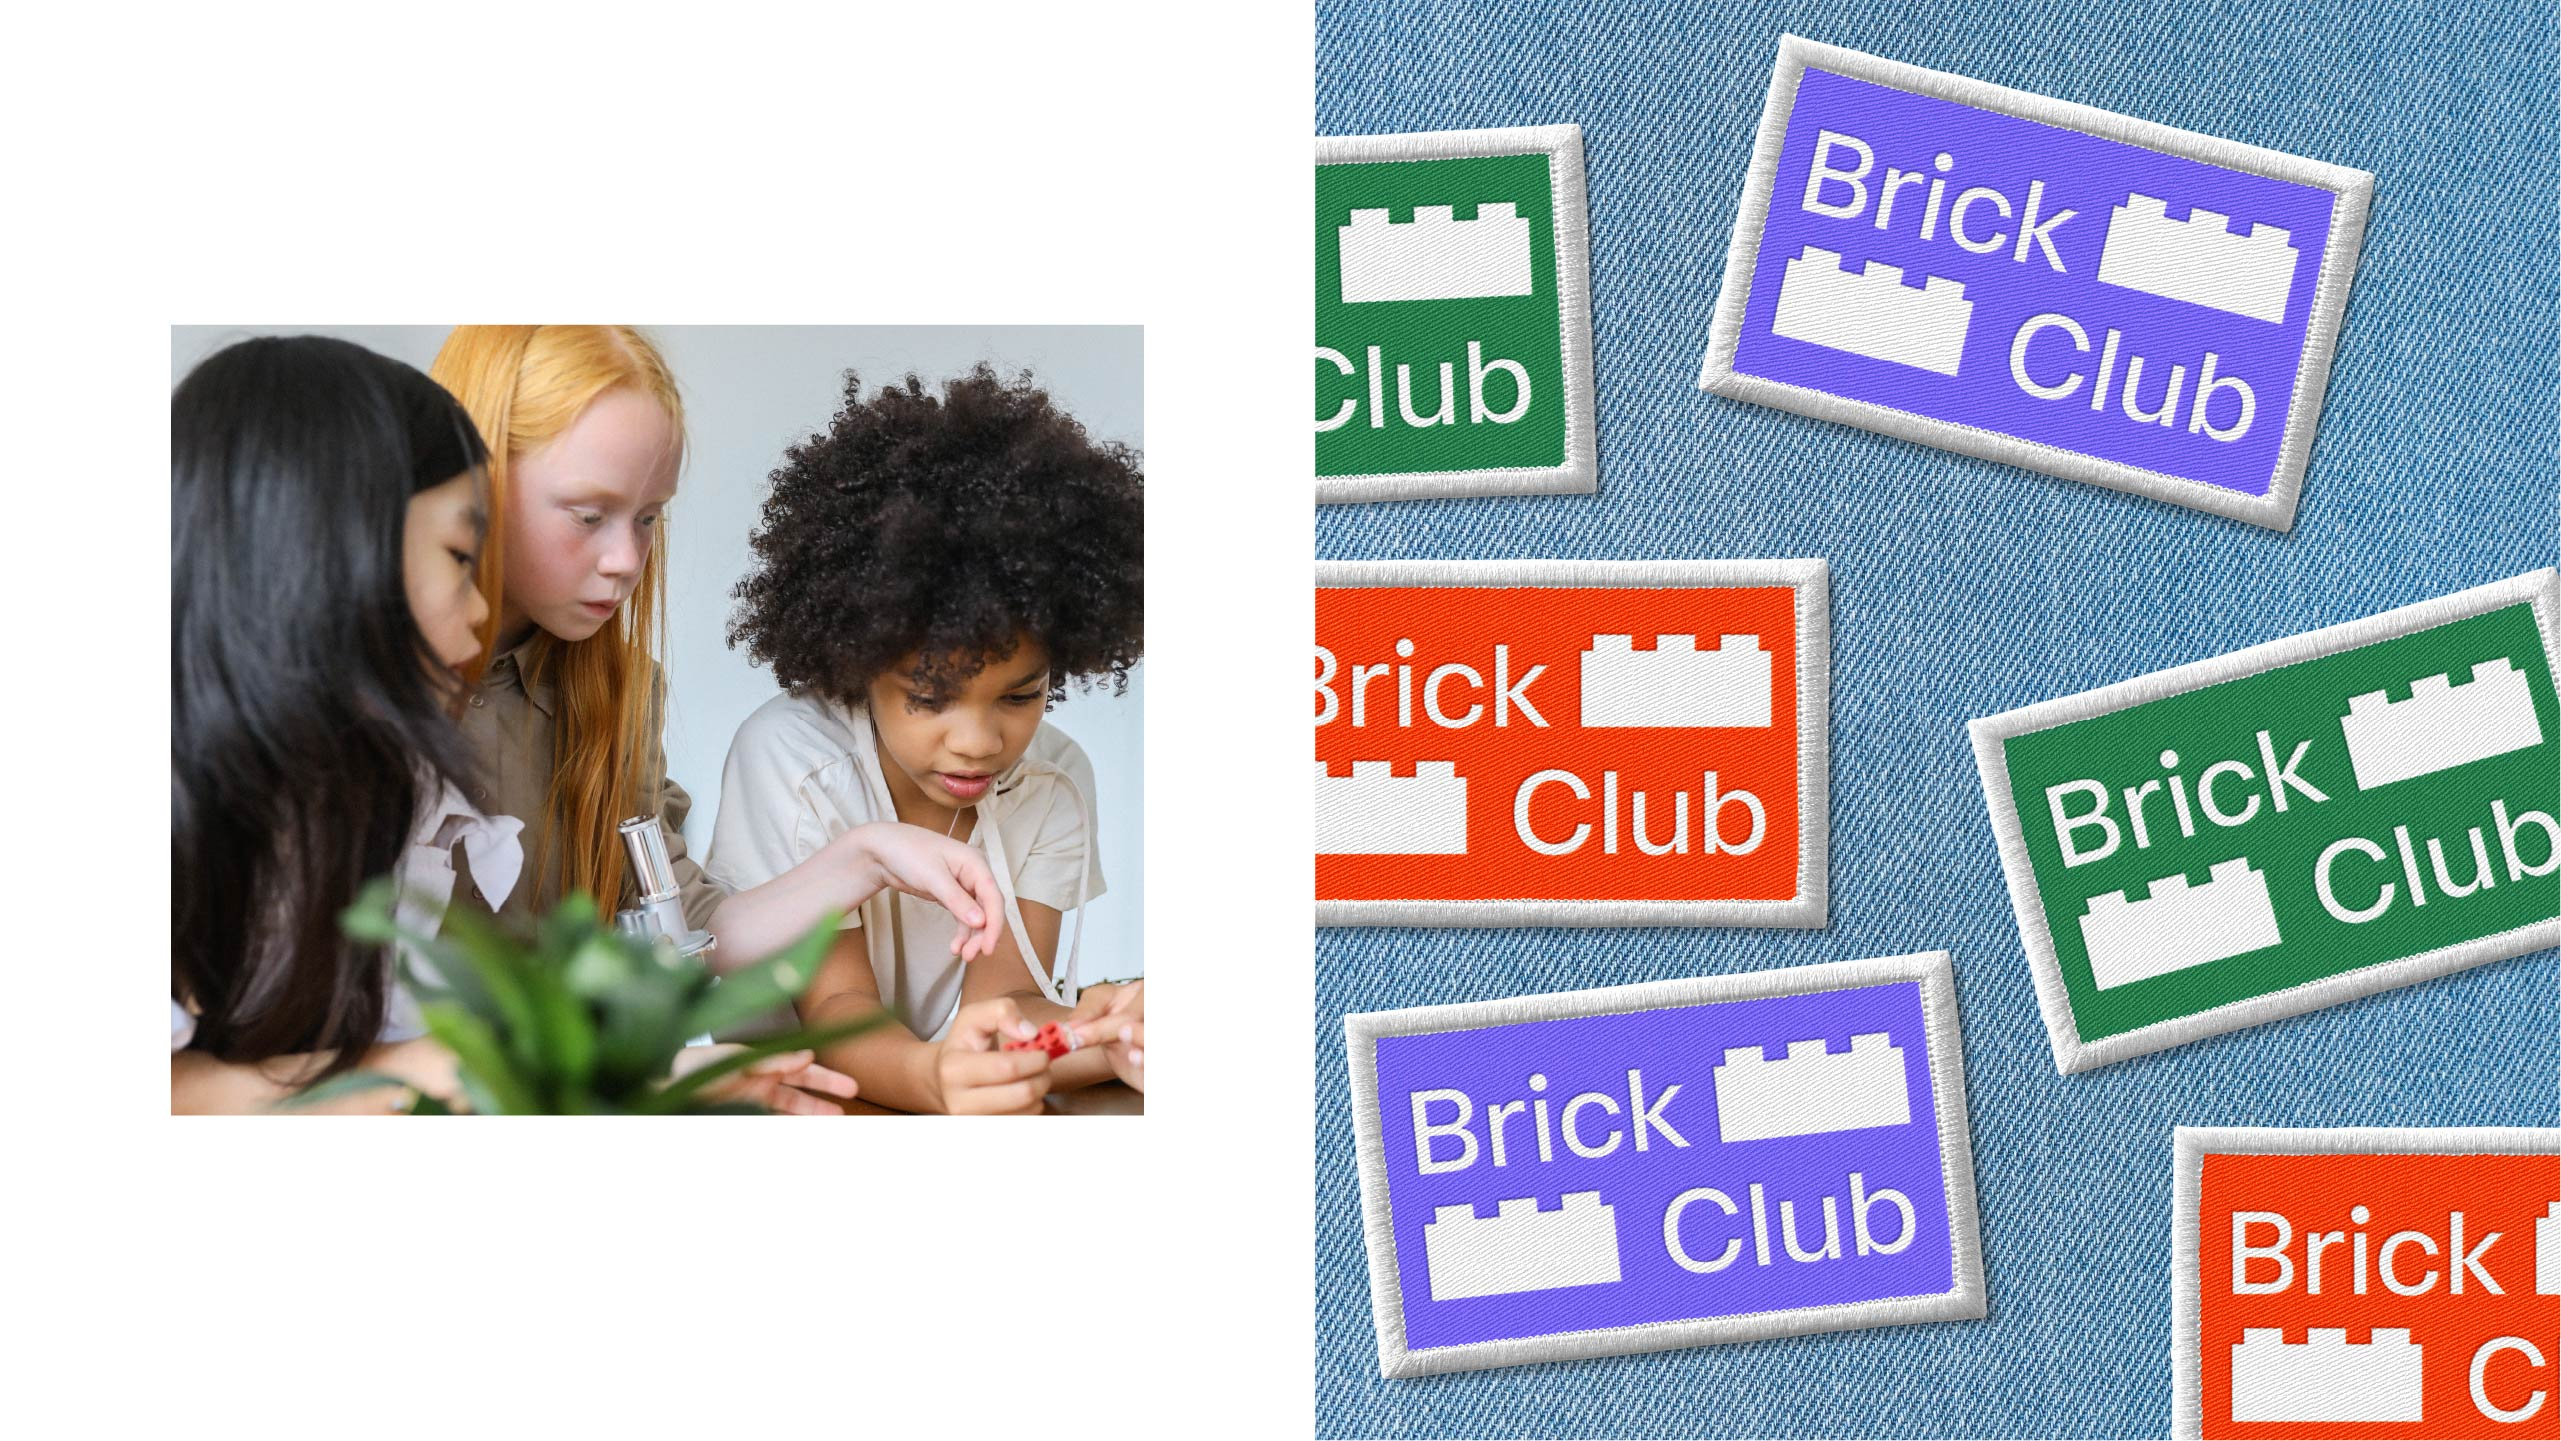 09-C-PLAY-INCLUDED-PHOTO-brick-club-kids-and-patches-50-2